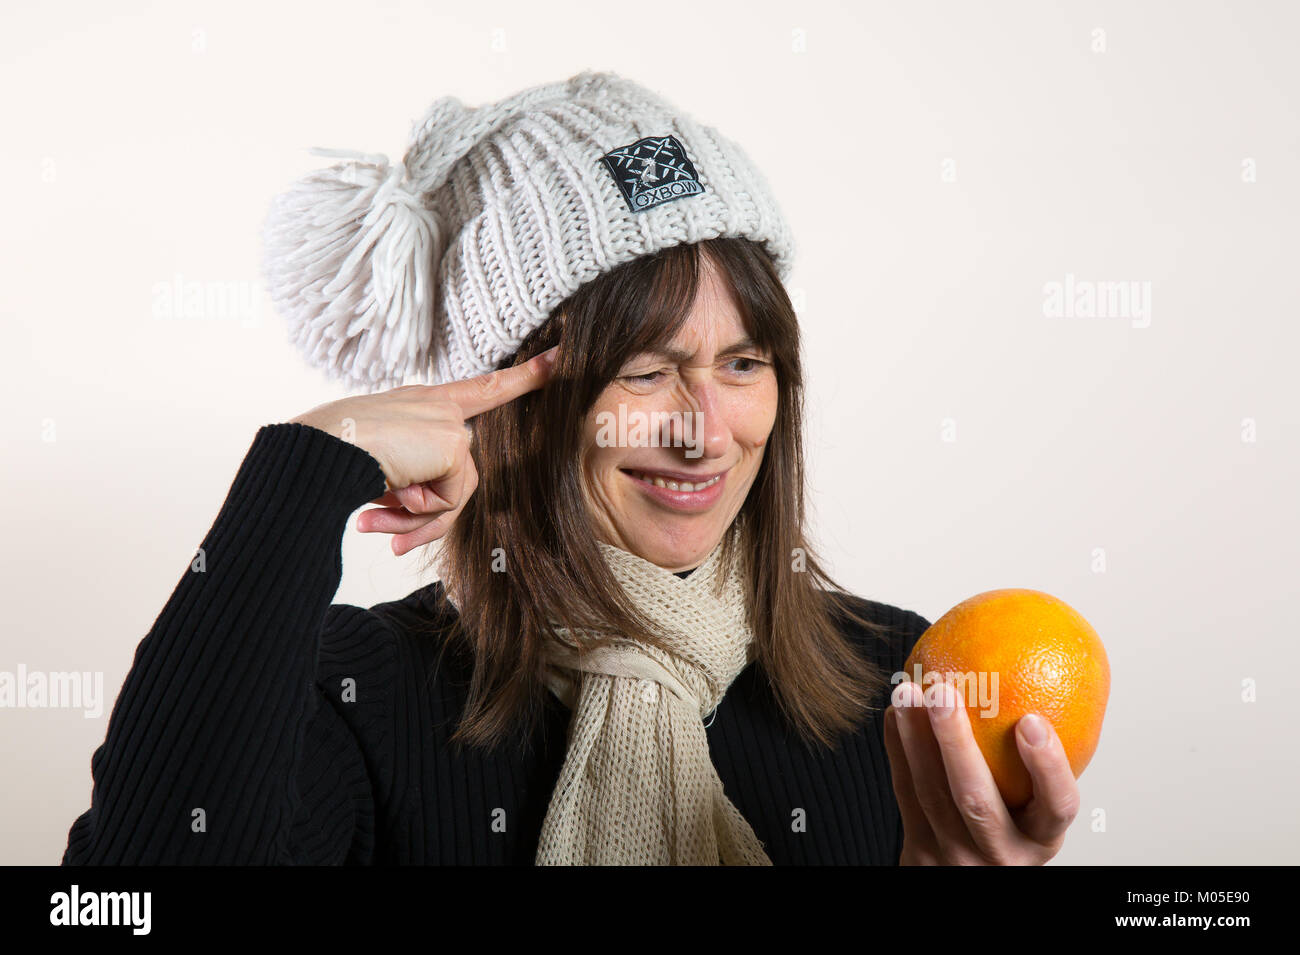 Puzzled female in woolly hat holding fruit, points to her head asking: What is it in her hand? A small grapefruit - Stock Image